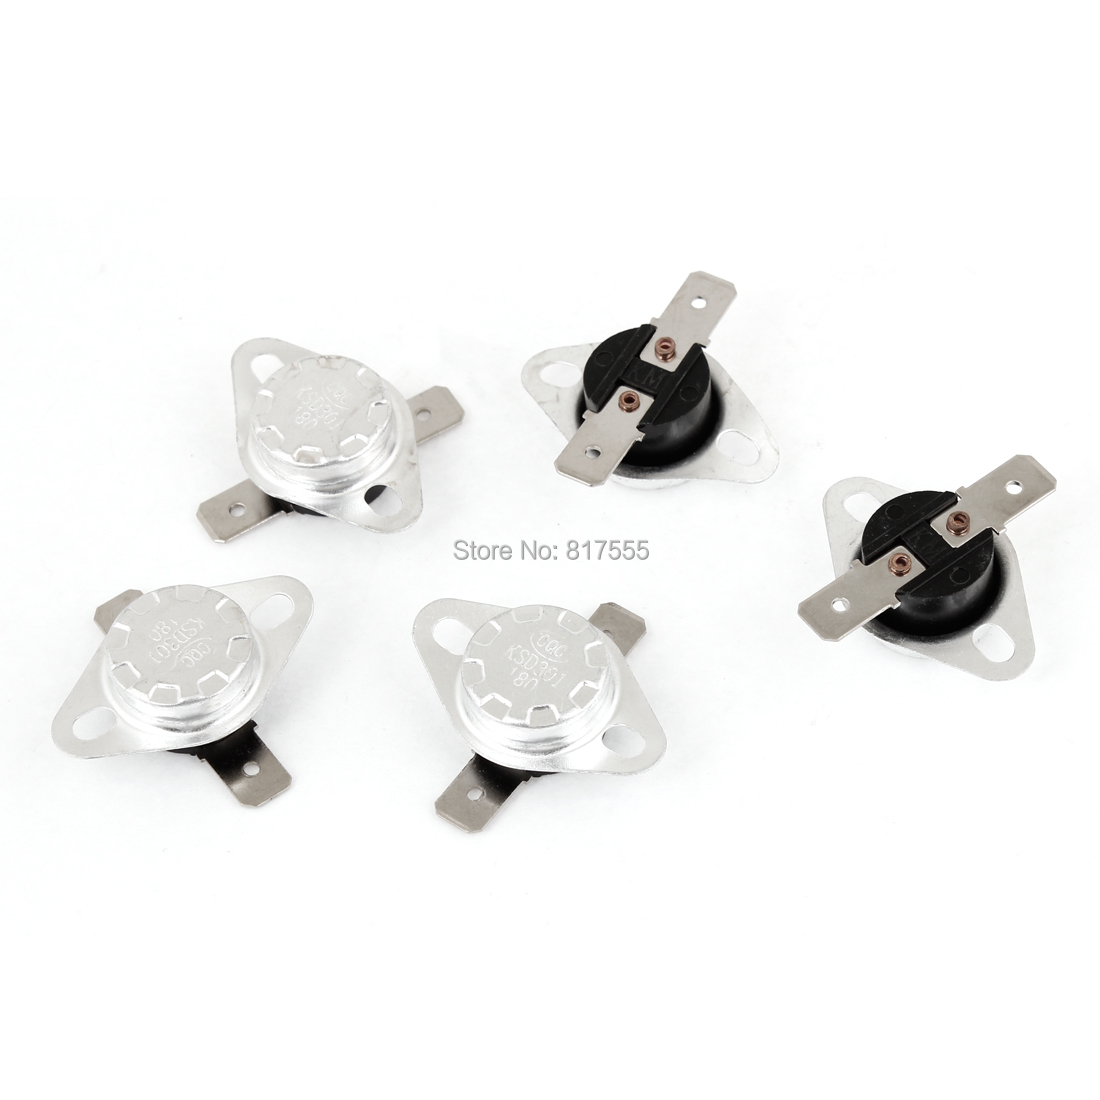 5 Pieces KSD301 180 Celsius 356F Normal Close Temperature Controlled Switch Electrical Equipment Supplies Switches Accessories